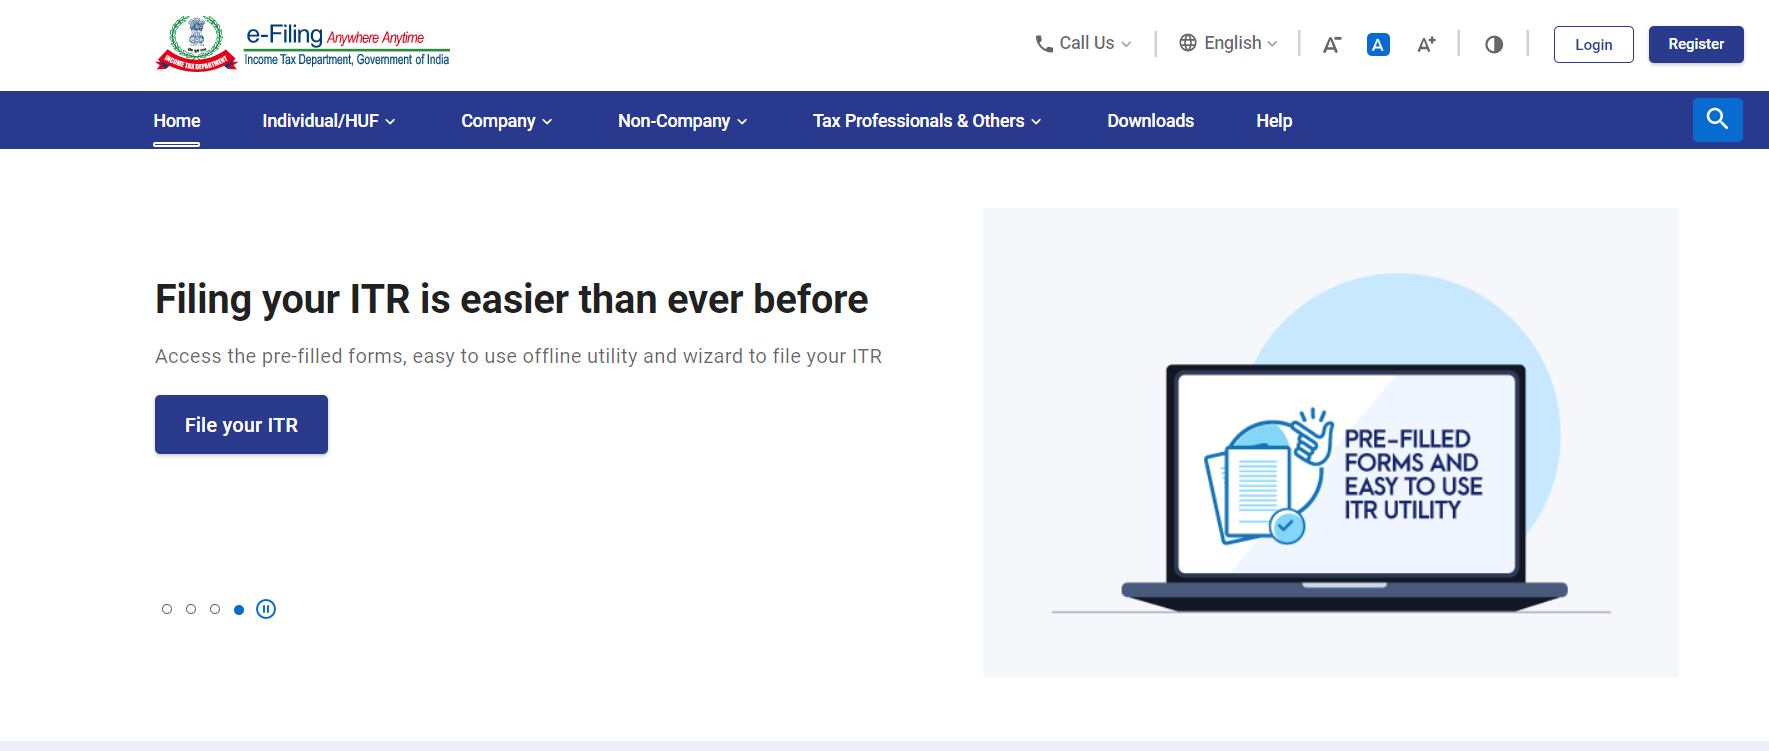 www.incometax.gov.in - Homepage